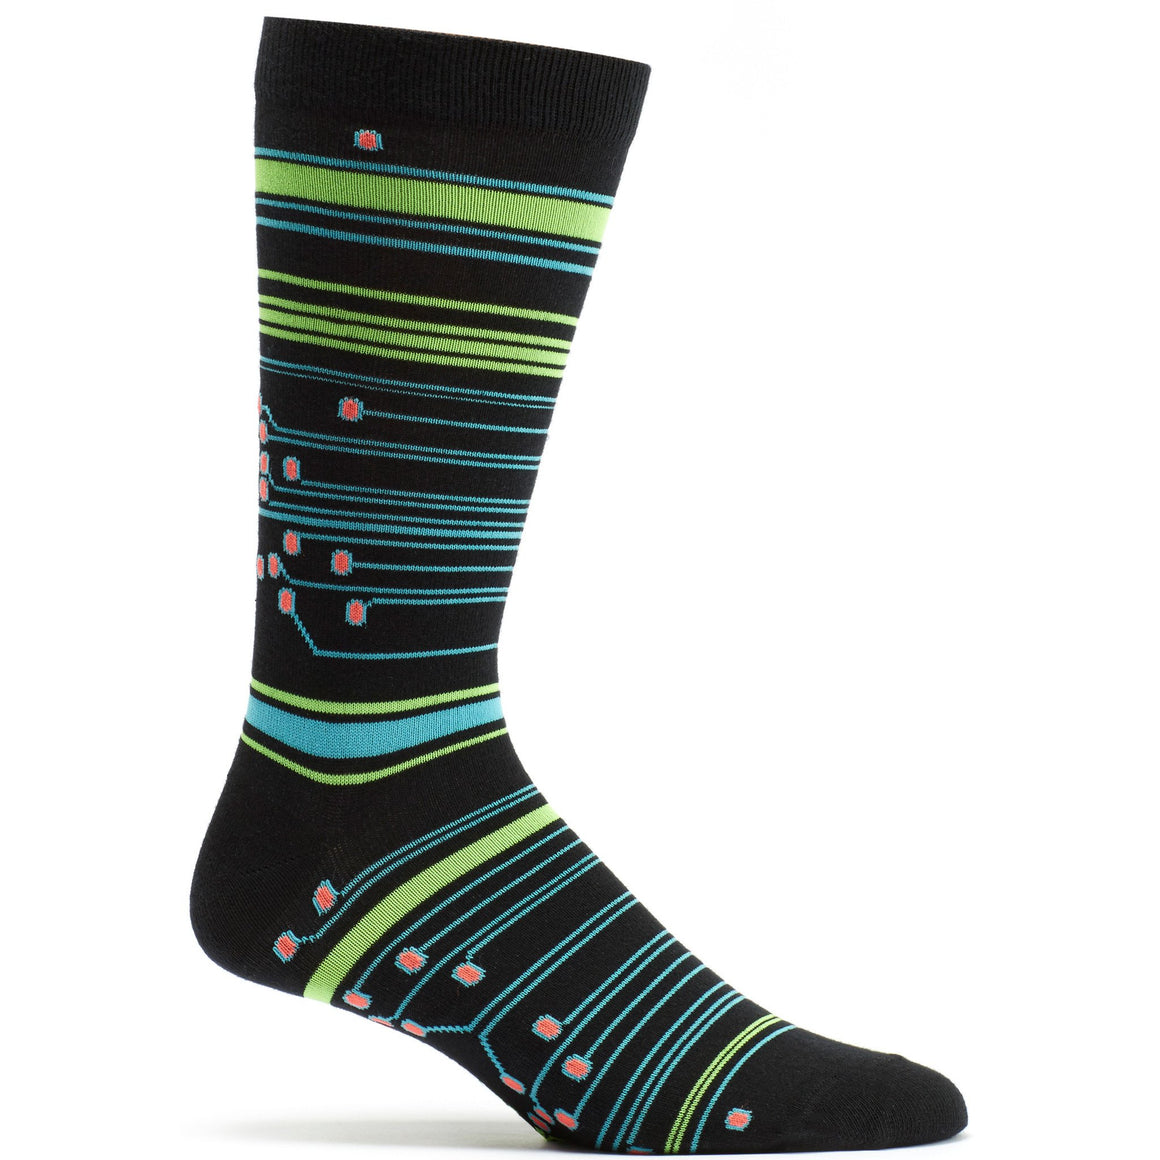 Circuit Stripes Sock in Black size 10-13 mens from ozone socks